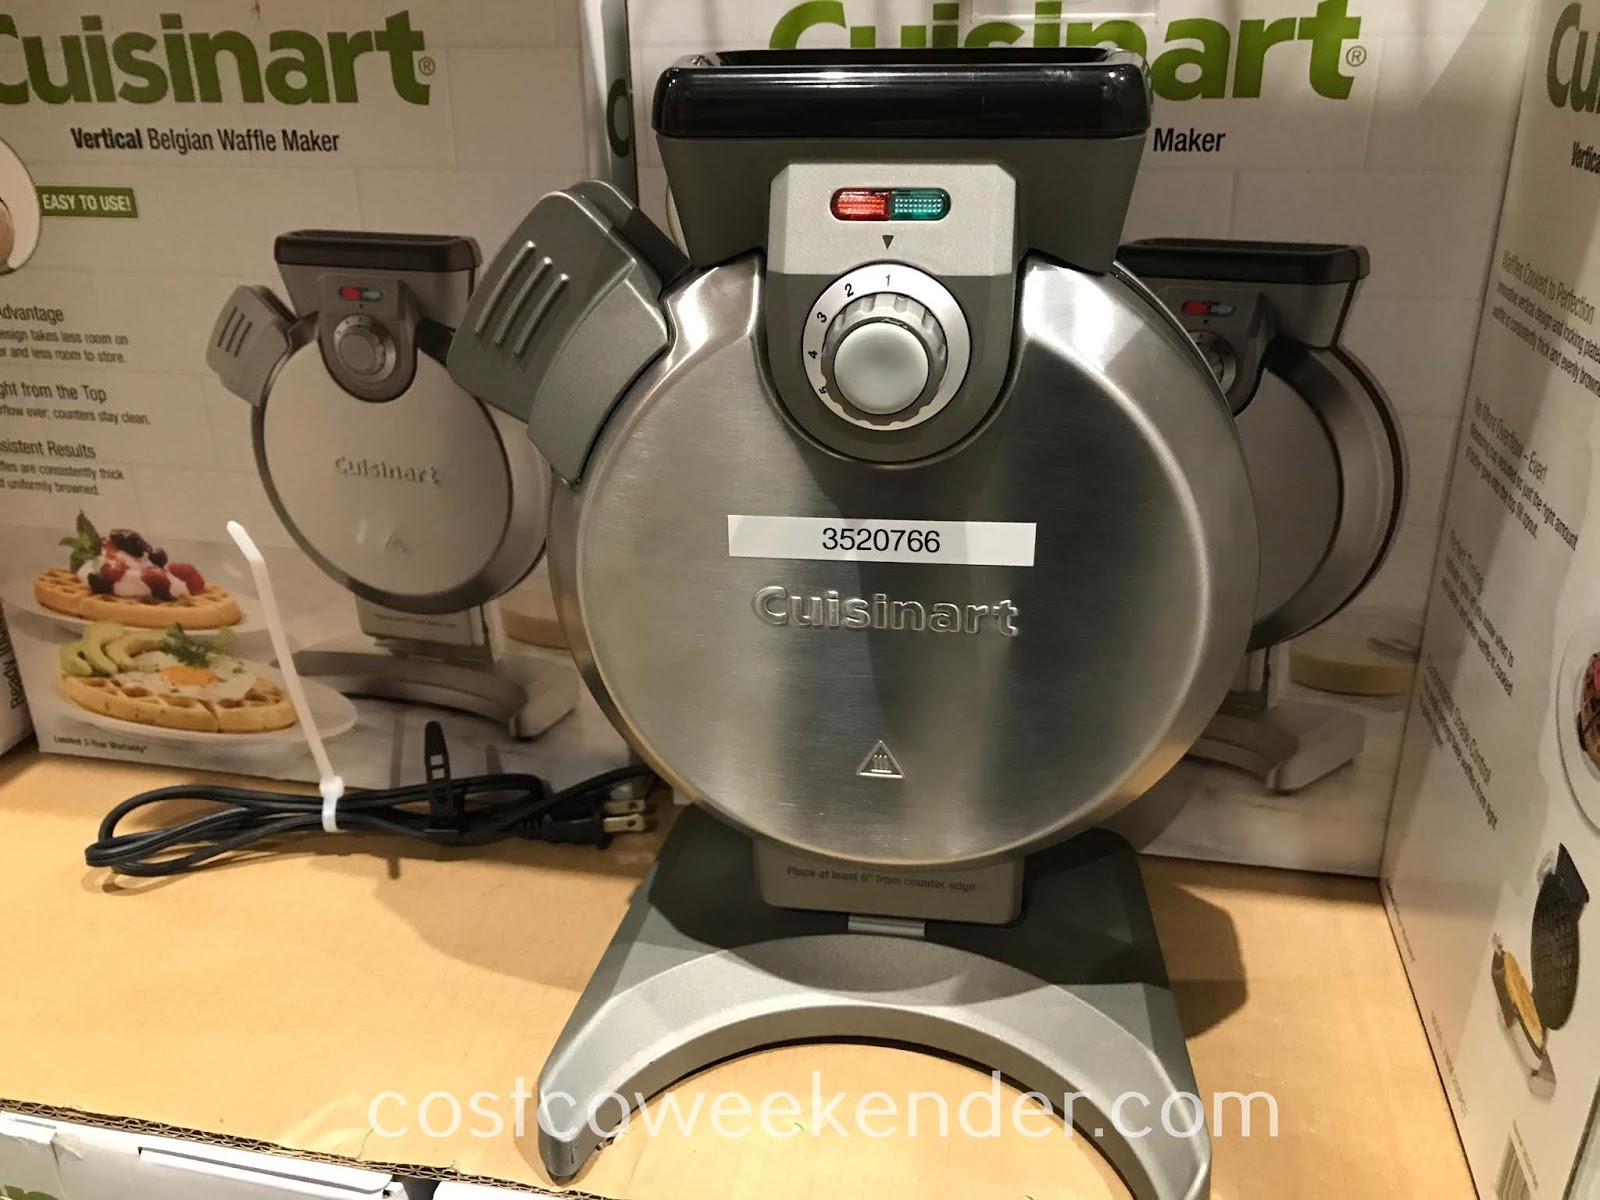 Costco 3520766 - Prepare a warm breakfast with the Cuisinart Vertical Belgian Waffle Maker